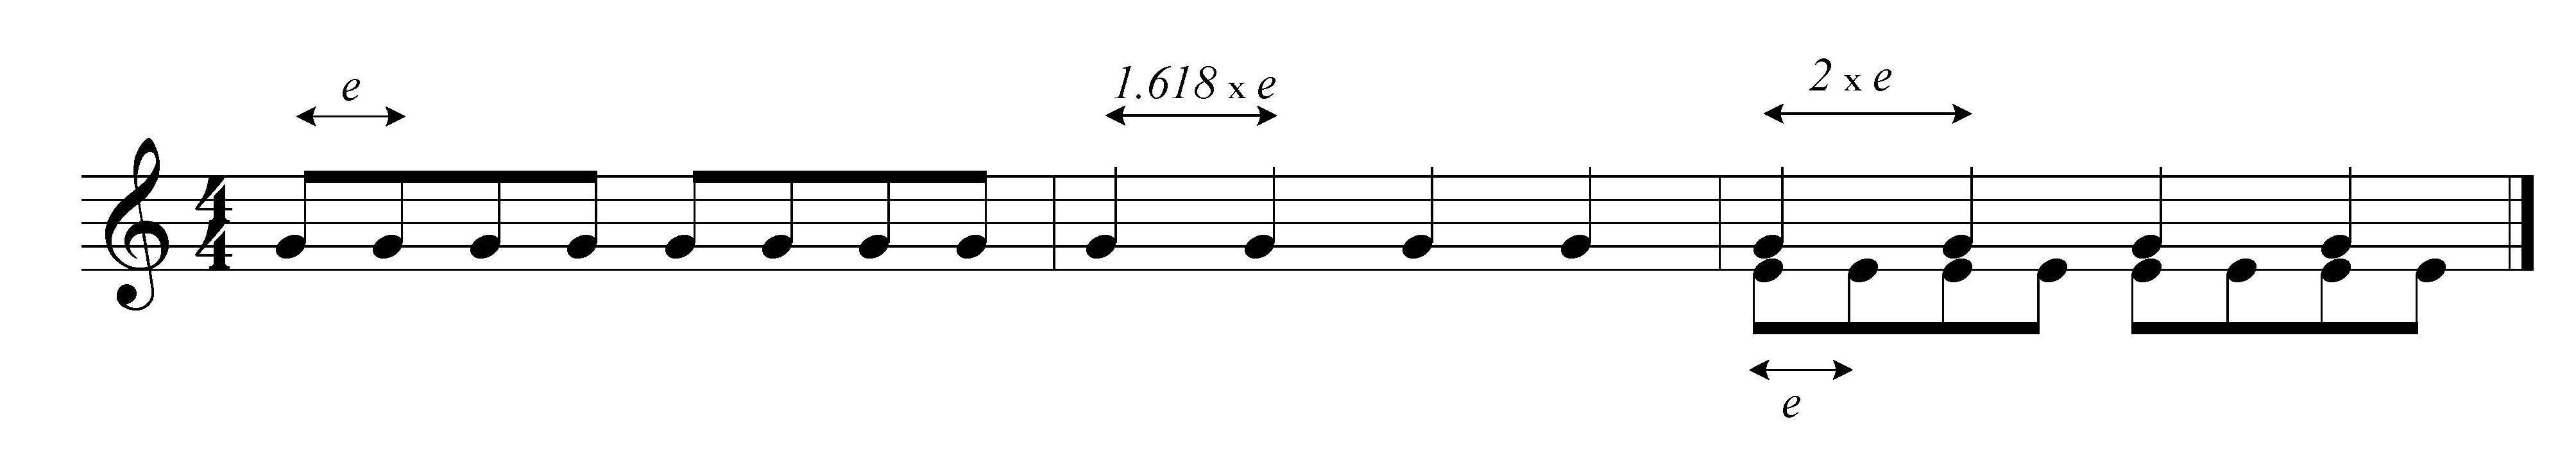 Spacing ratios between notes of different durations